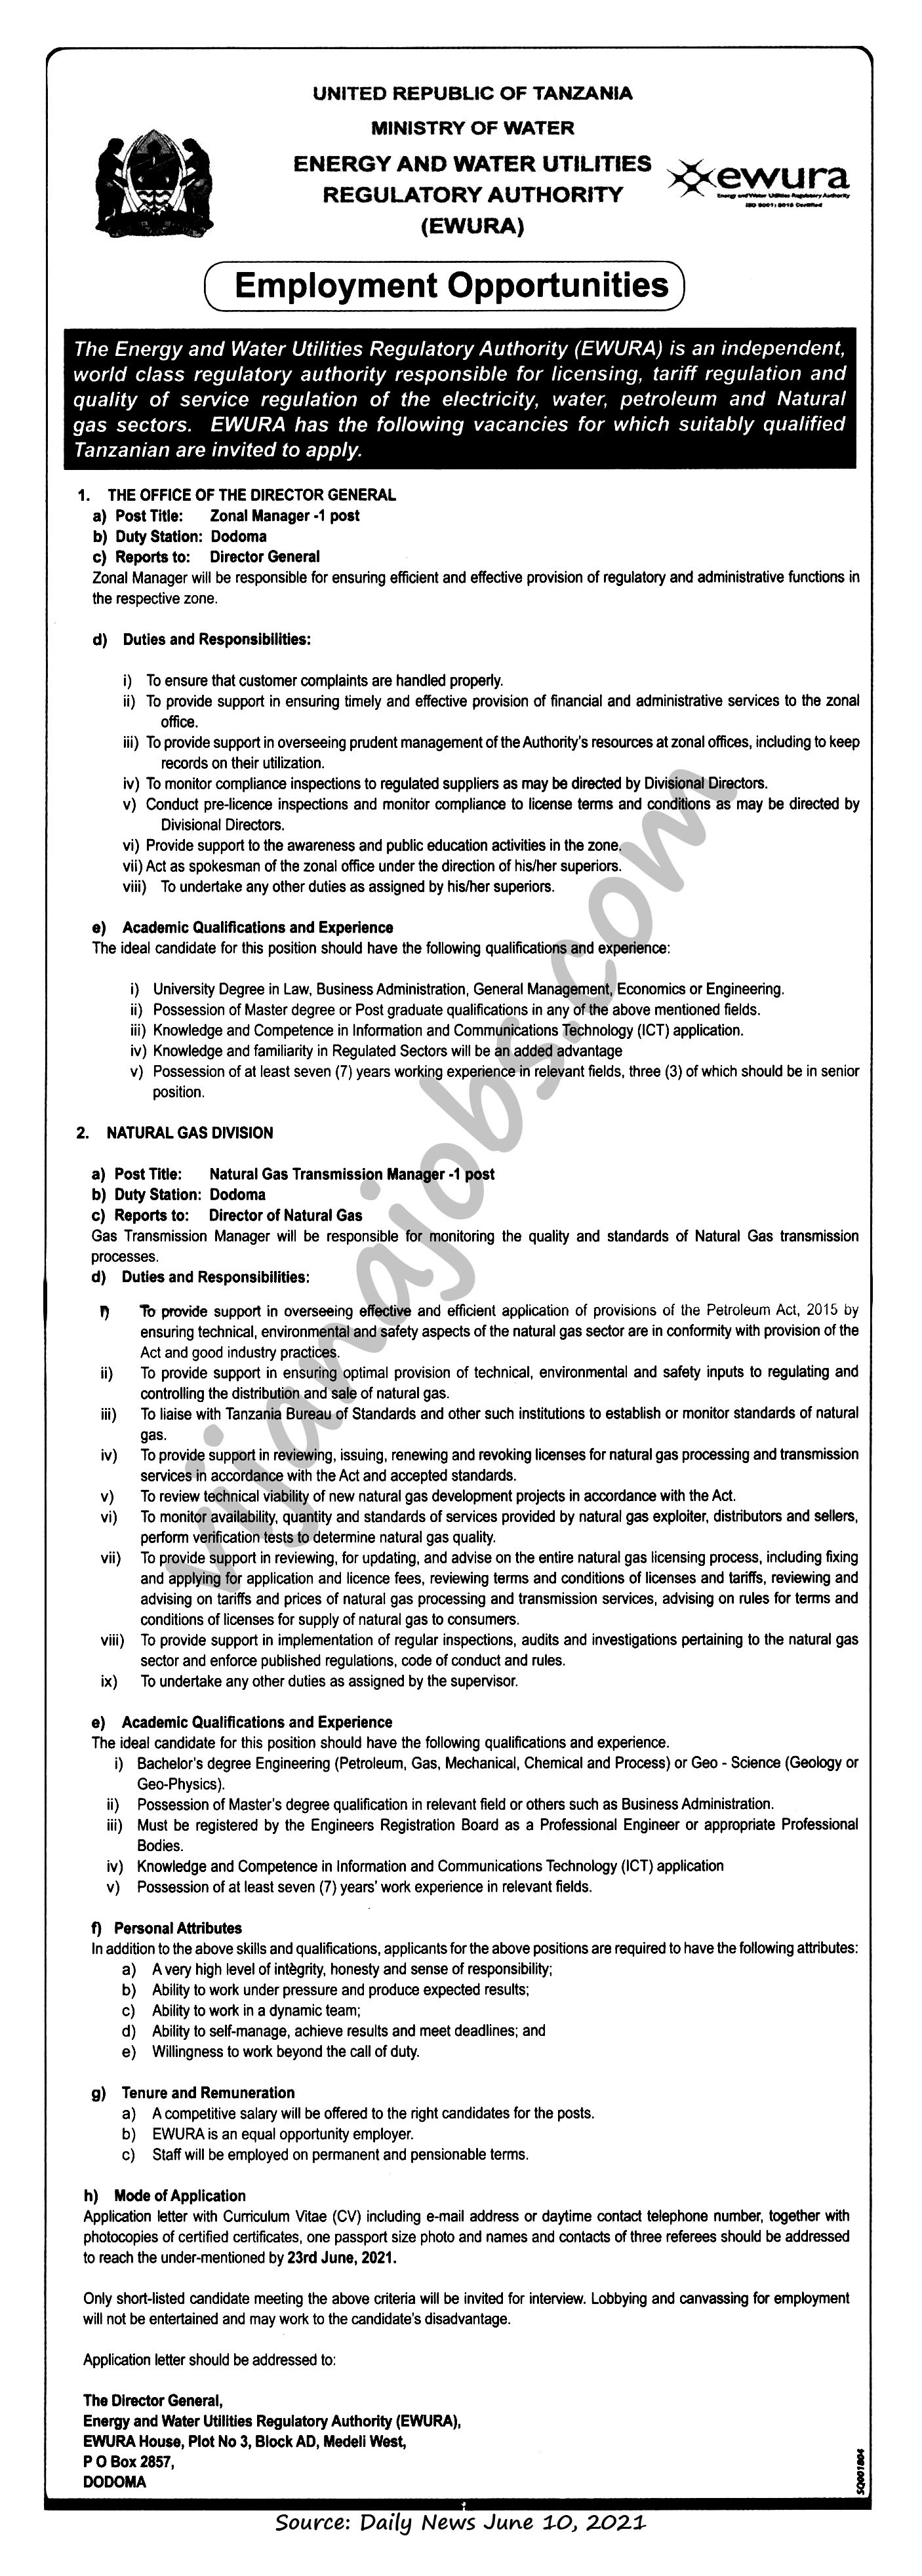 Zonal Manager, Natural Gas Transmission Manager